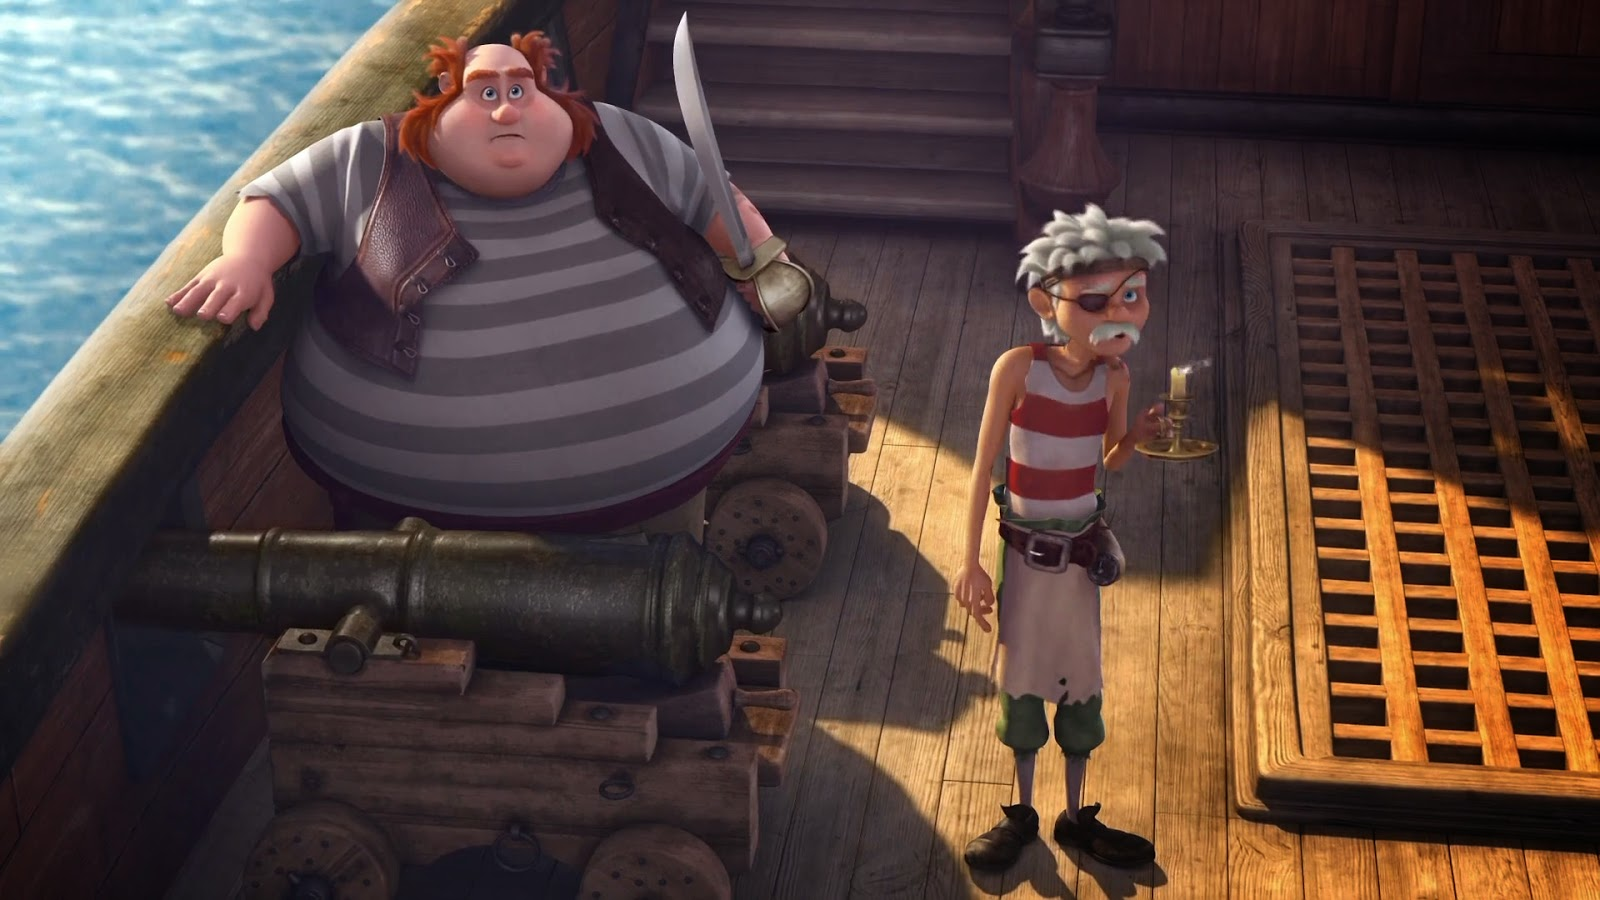 Tinker Bell And The Pirate Fairy (2014) S4 s Tinker Bell And The Pirate Fairy (2014)